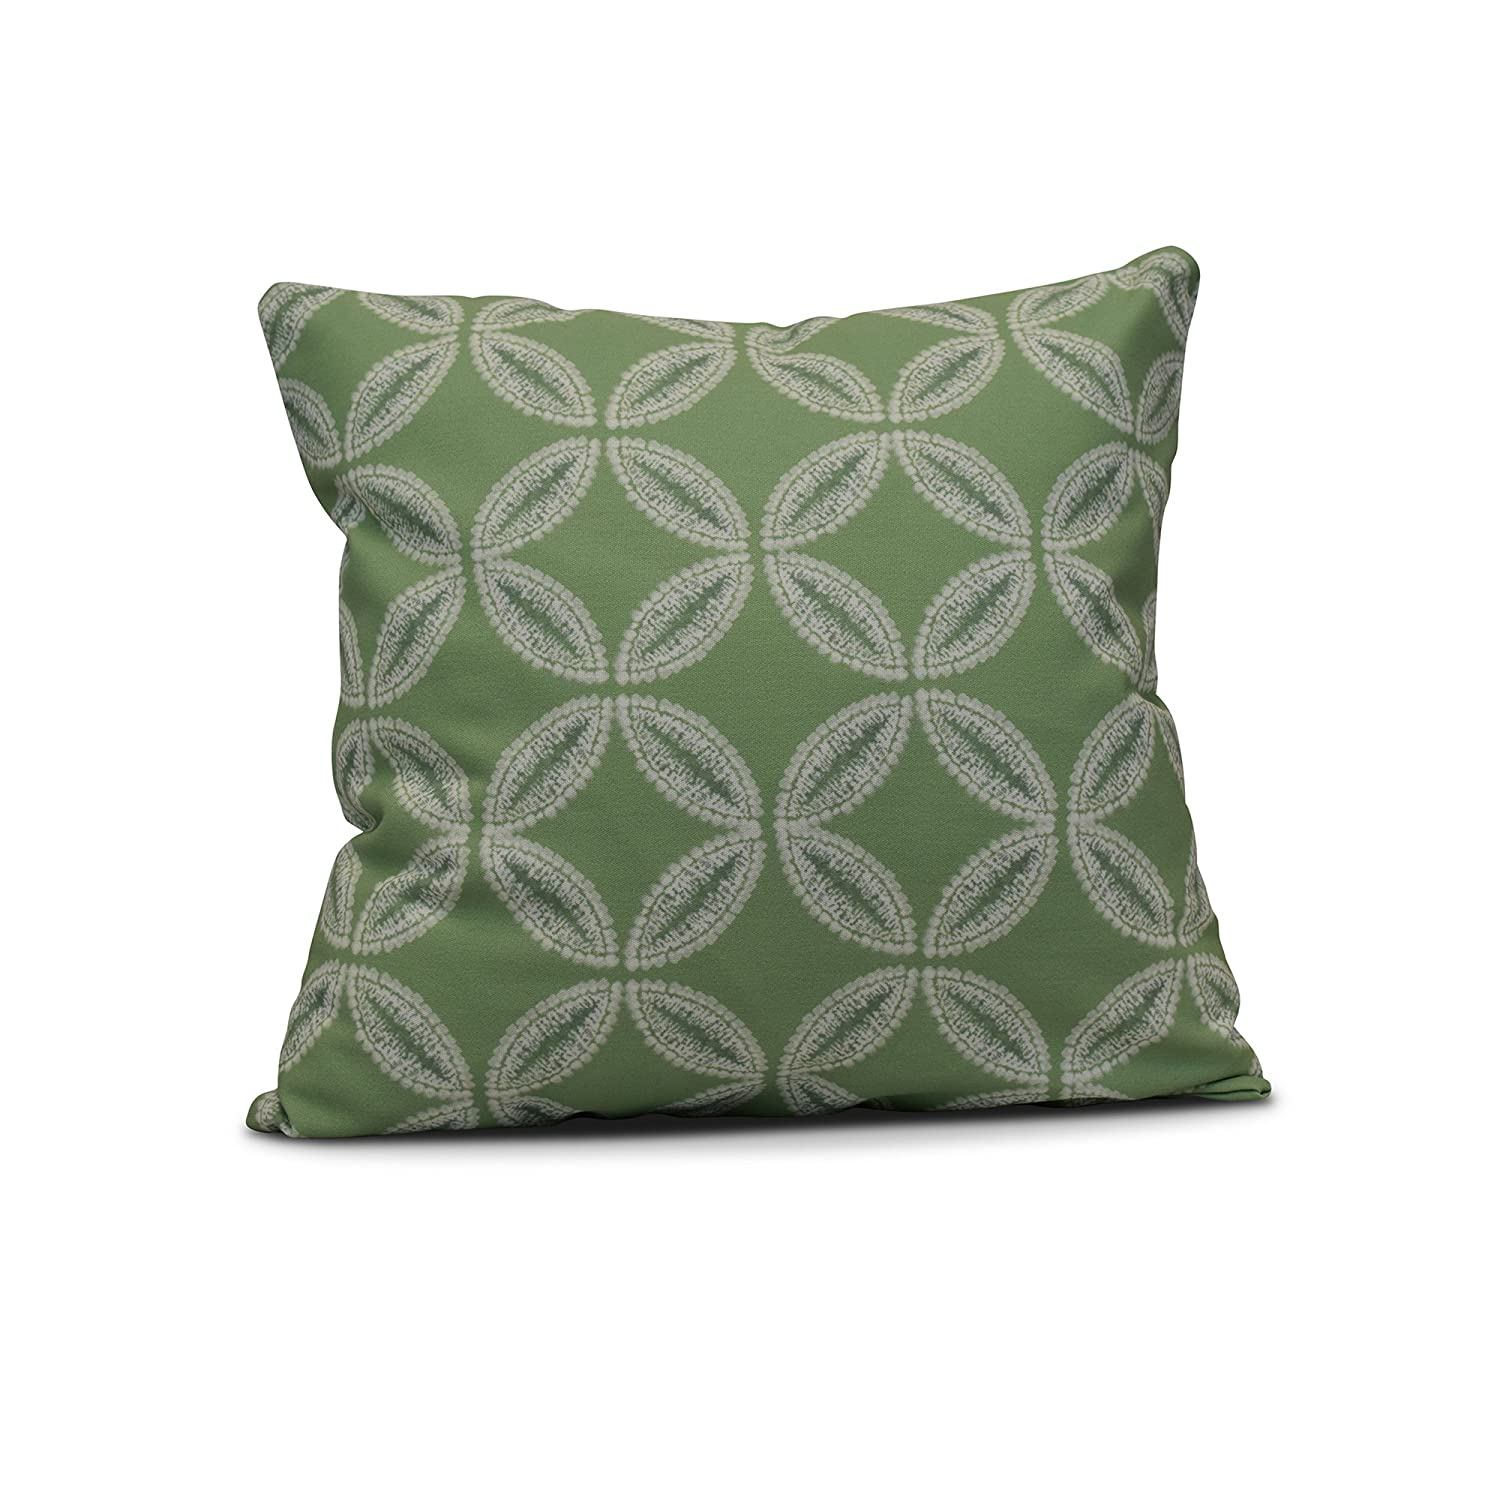 E by design Tidepool Geometric Print Outdoor Pillow 20' x 20' Lavender